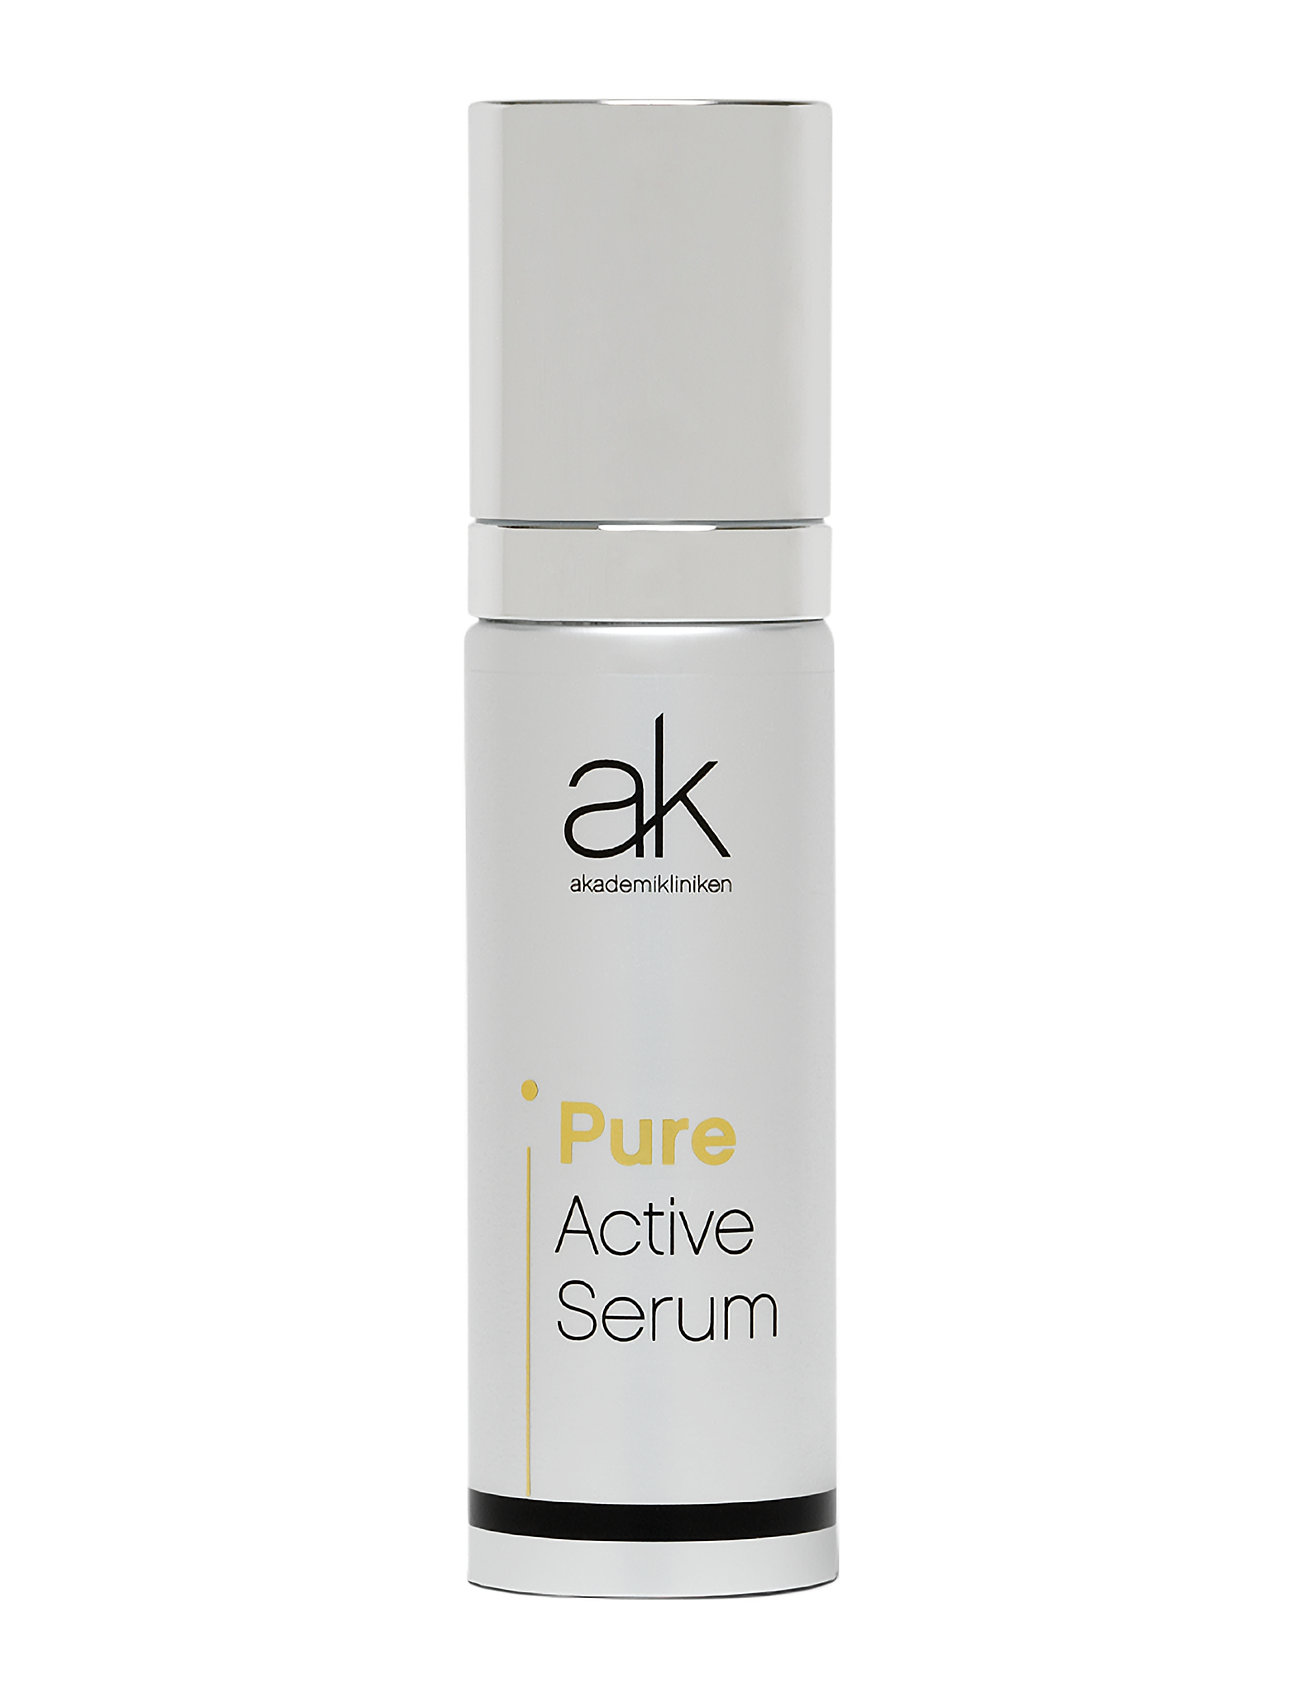 Akademikliniken Skincare Pure Active Serum - CLEAR